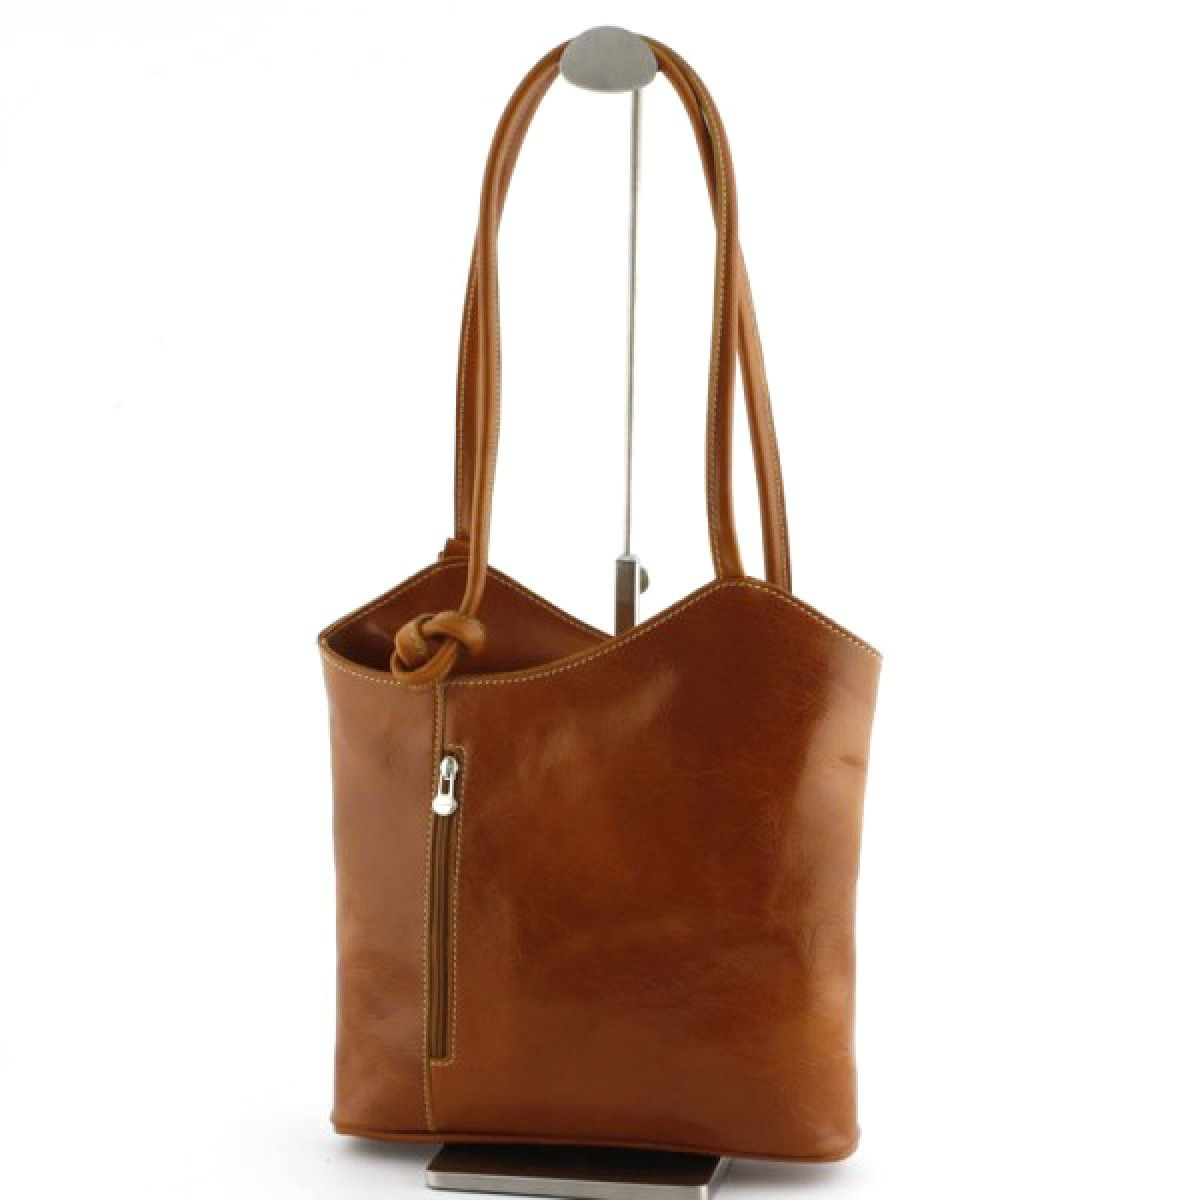 b852be32045 Leren Dames Schoudertas Marche Cognac #bag #bags #leatherbag #leatherbags  #shoulderbag #ladiesbag #damestas #tas #lerentas #schoudertas >  www.marington.nl ...